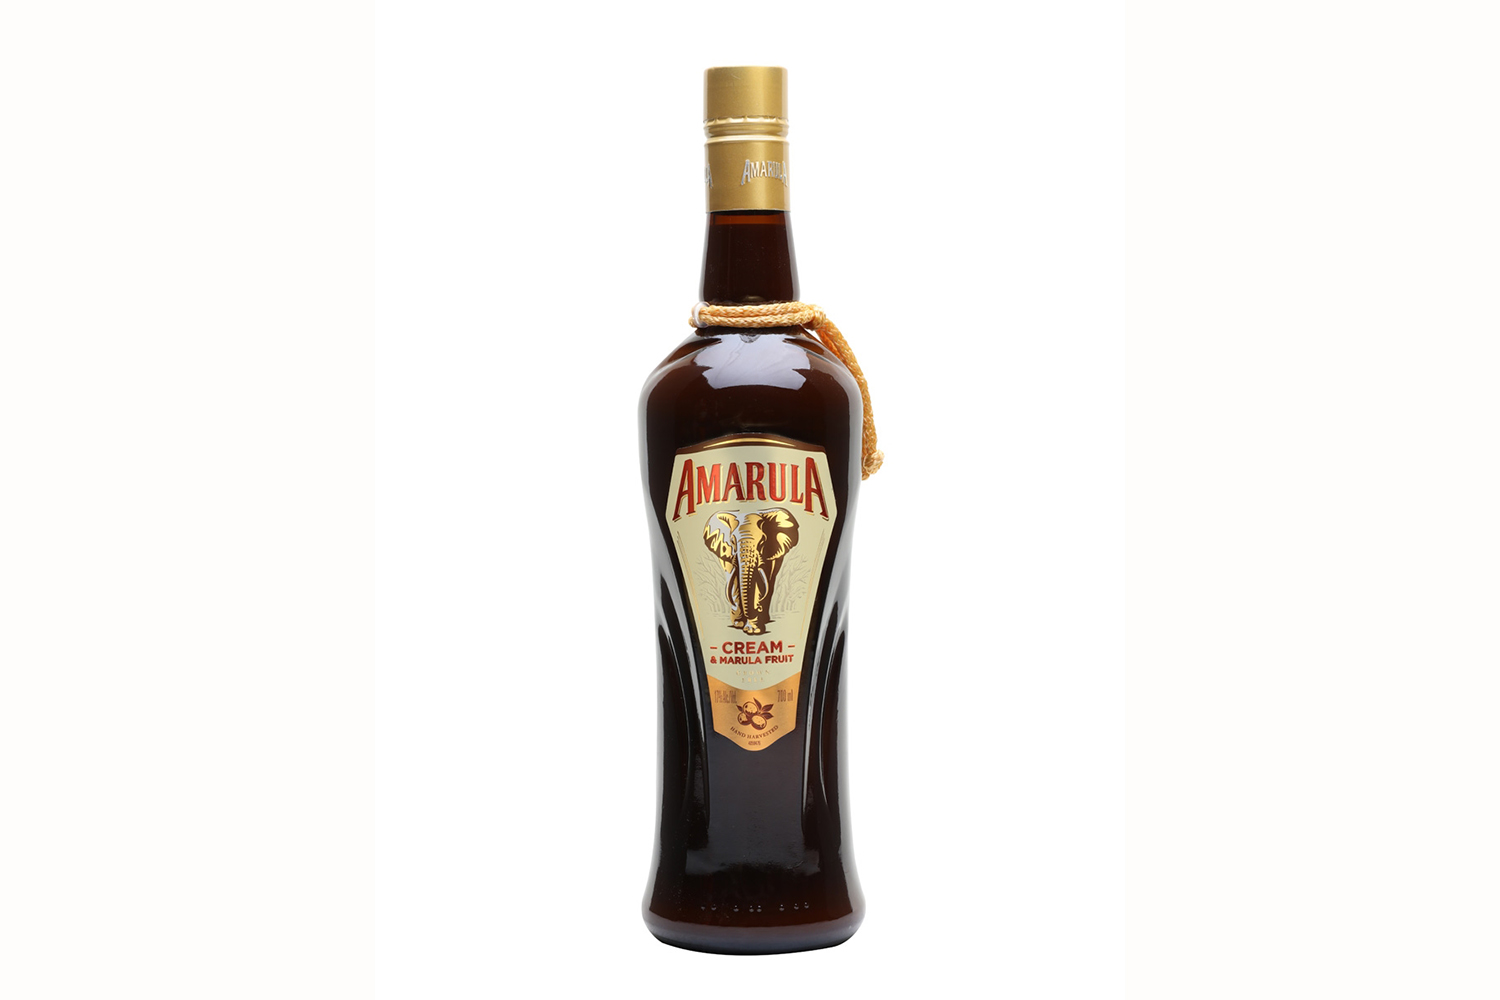 Amarula from South Africa